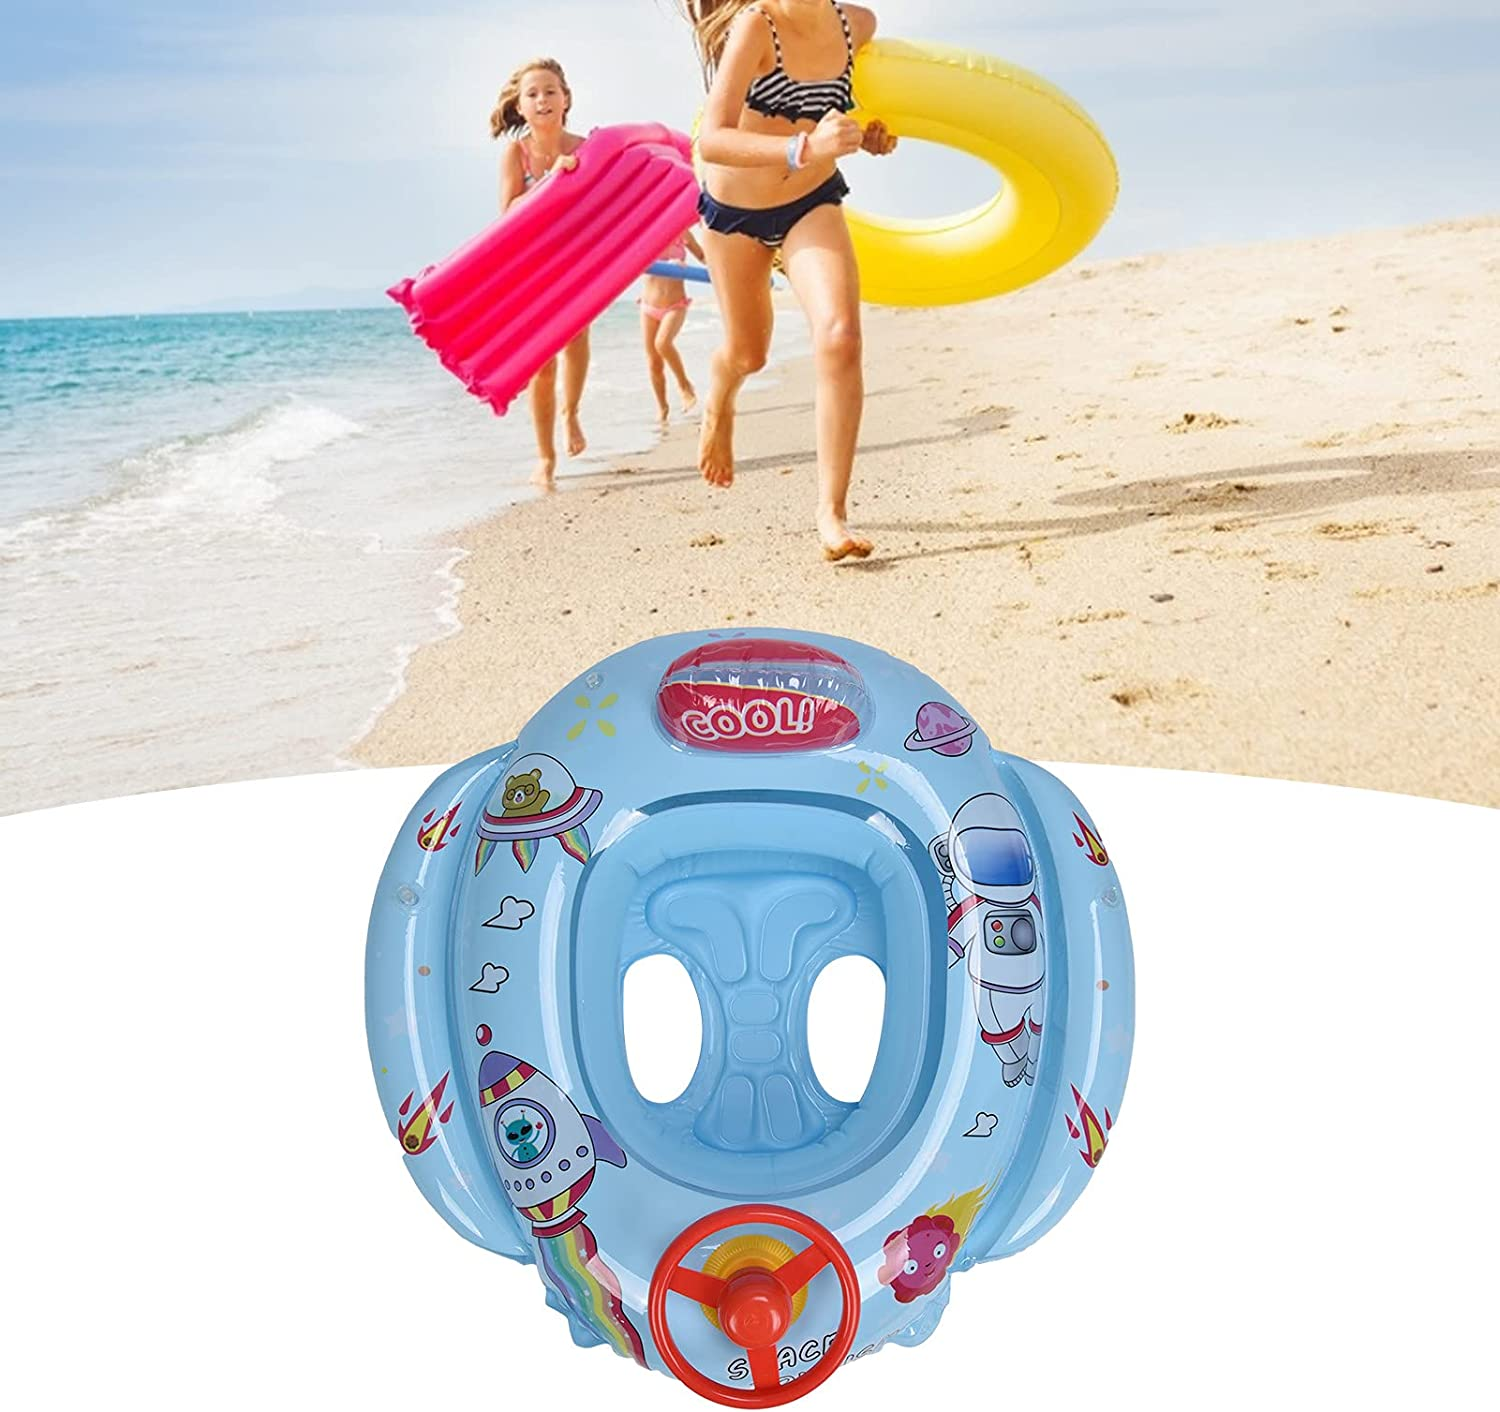 01 Swim Ring for security Toddlers Bargain sale PVC Rings with Hor Soft Material